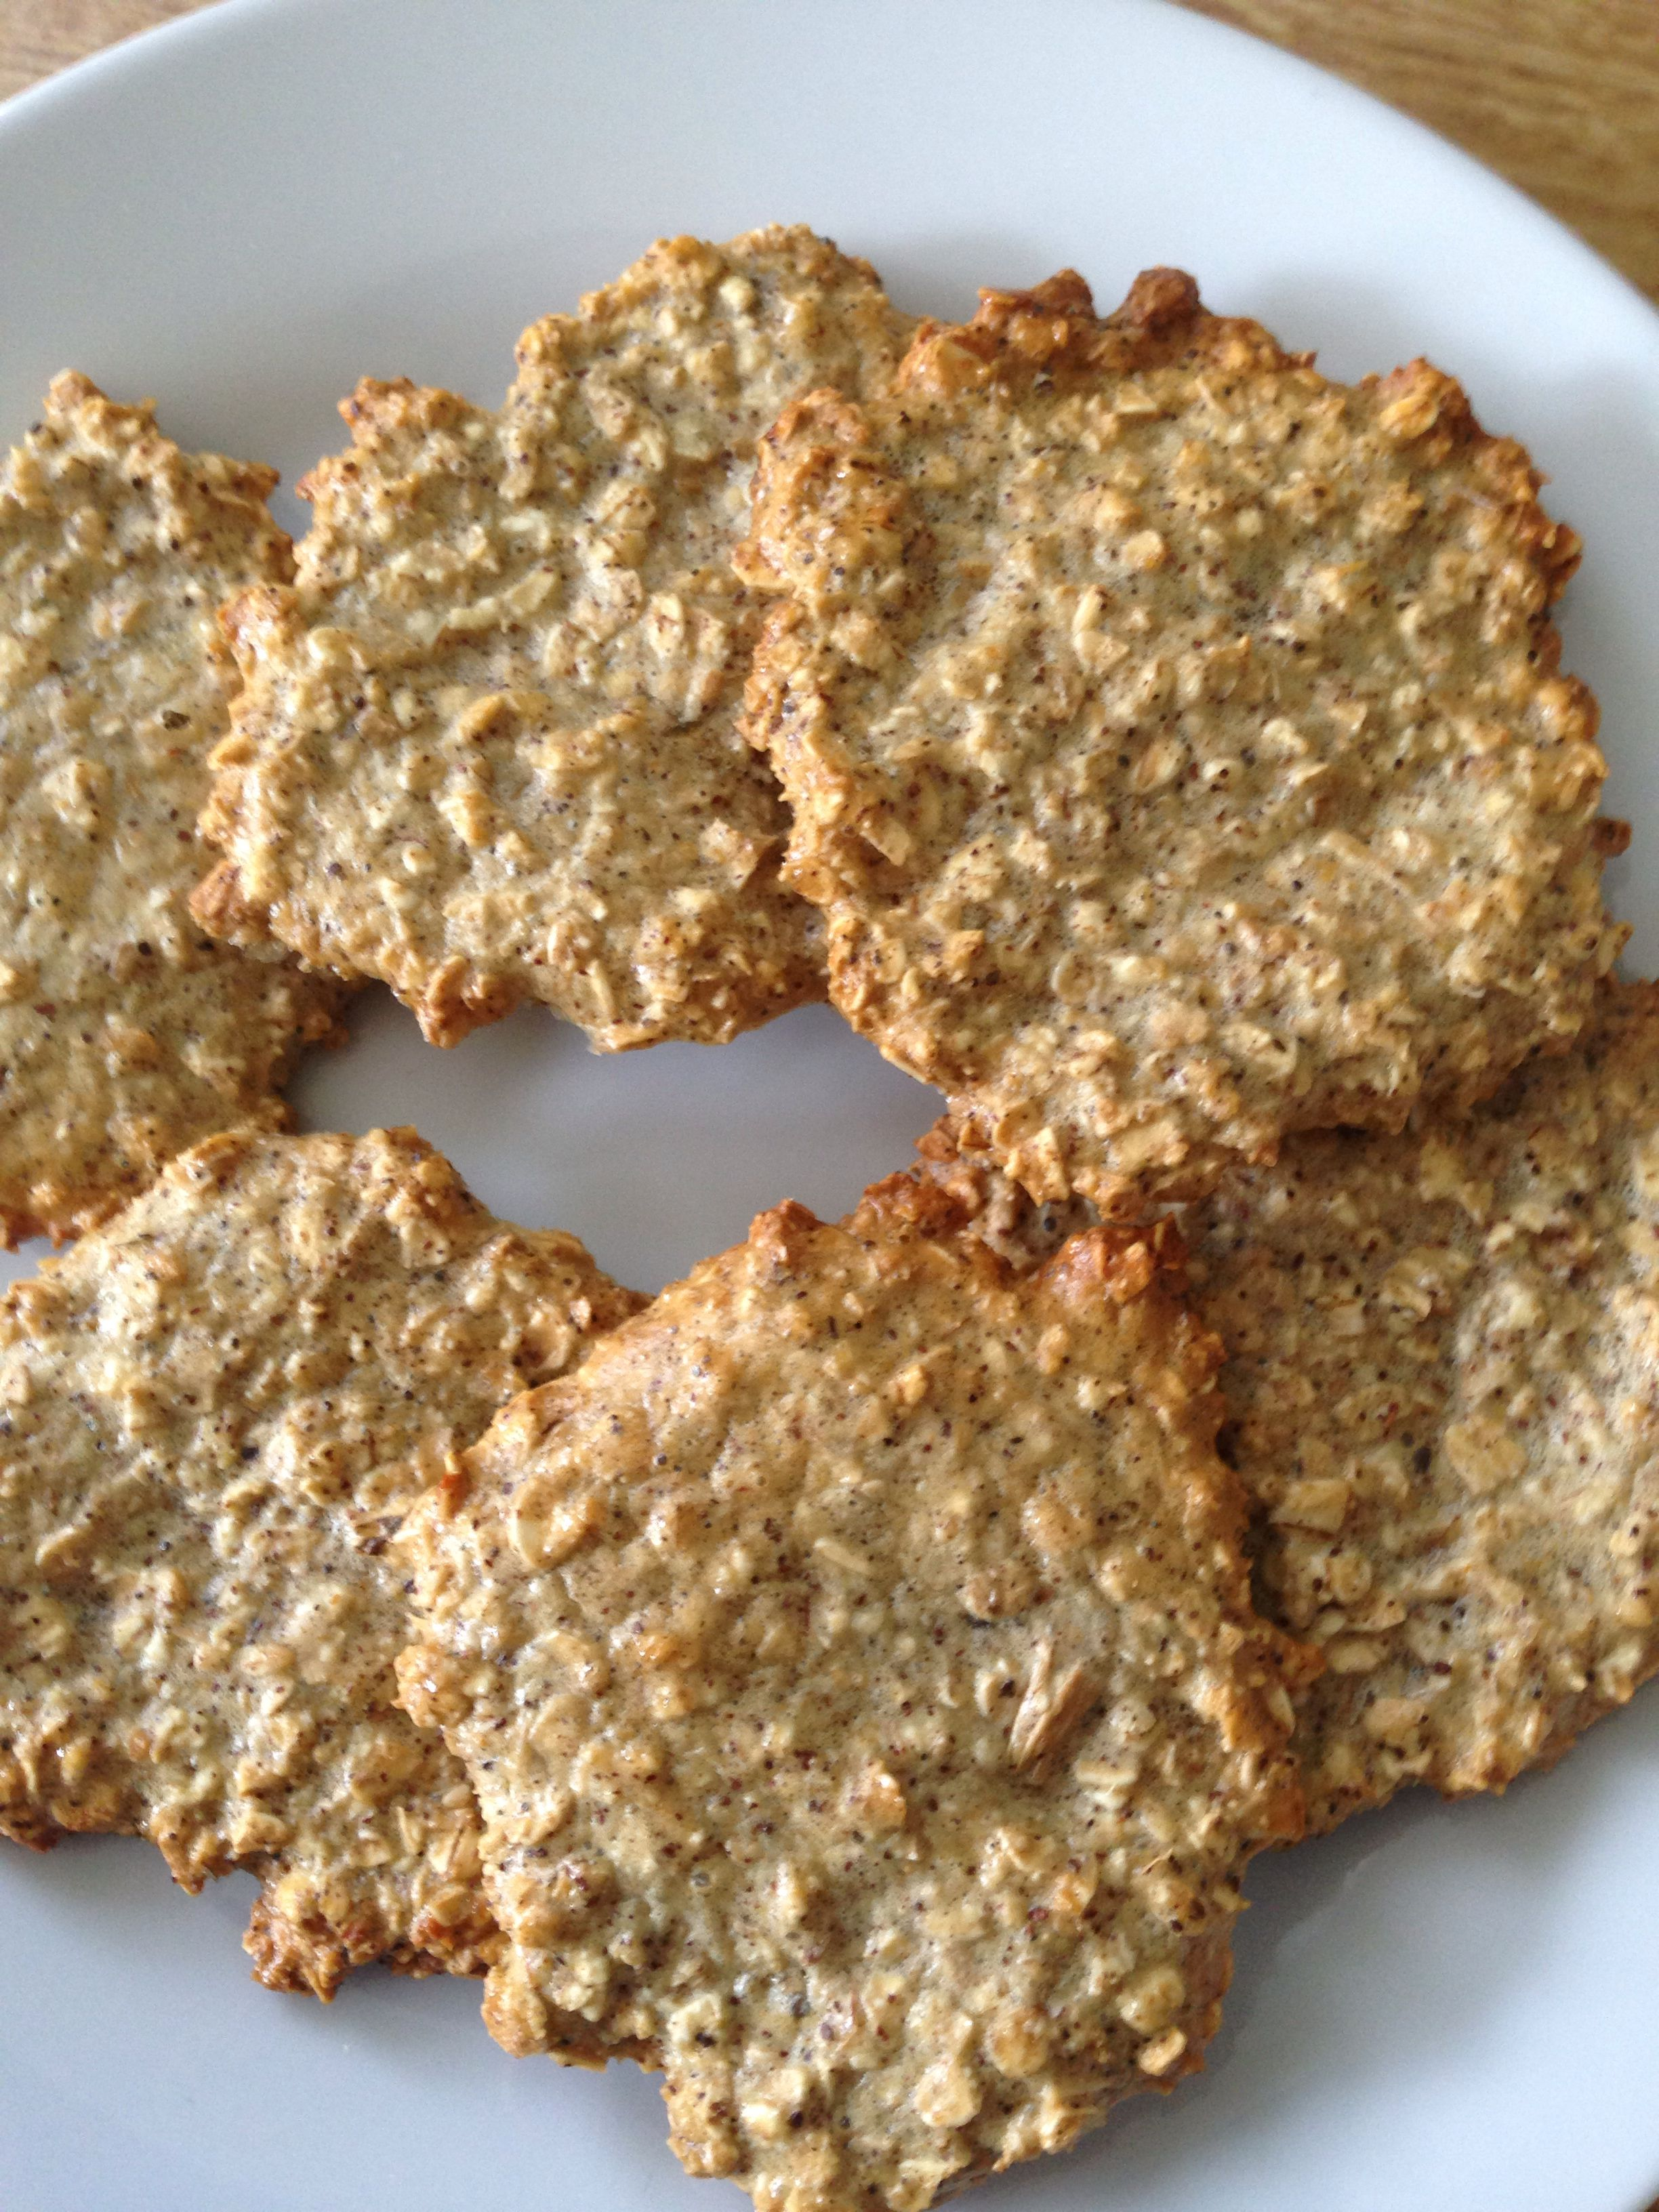 Slimming World Oat Biscuits Syn Free If Using 35g Oats As